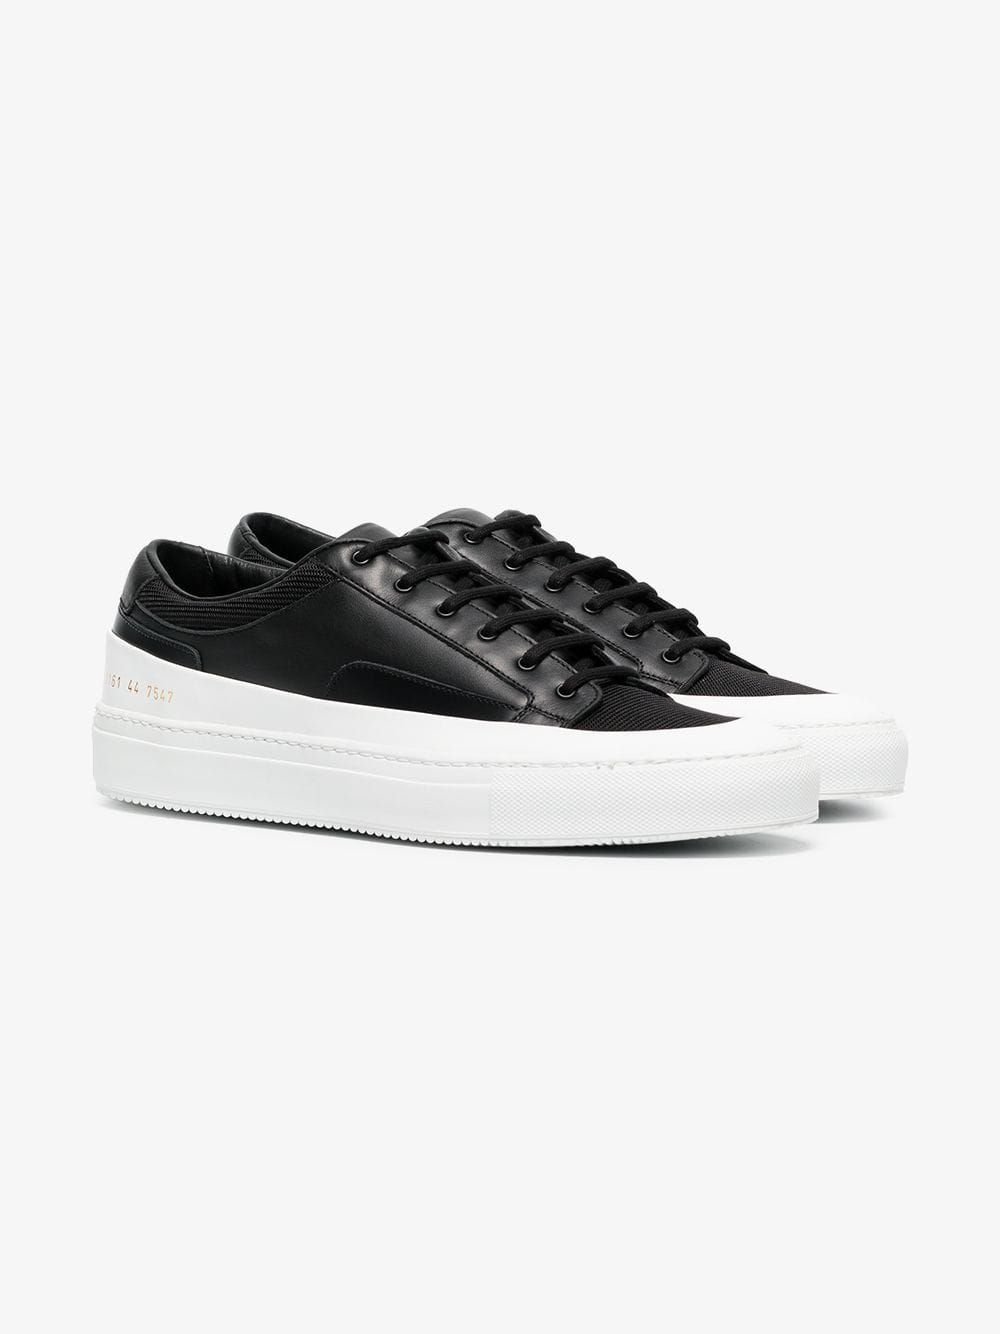 f49f15f09f973 COMMON PROJECTS COMMON PROJECTS ACHILLES SUPER SNEAKERS.  commonprojects   shoes